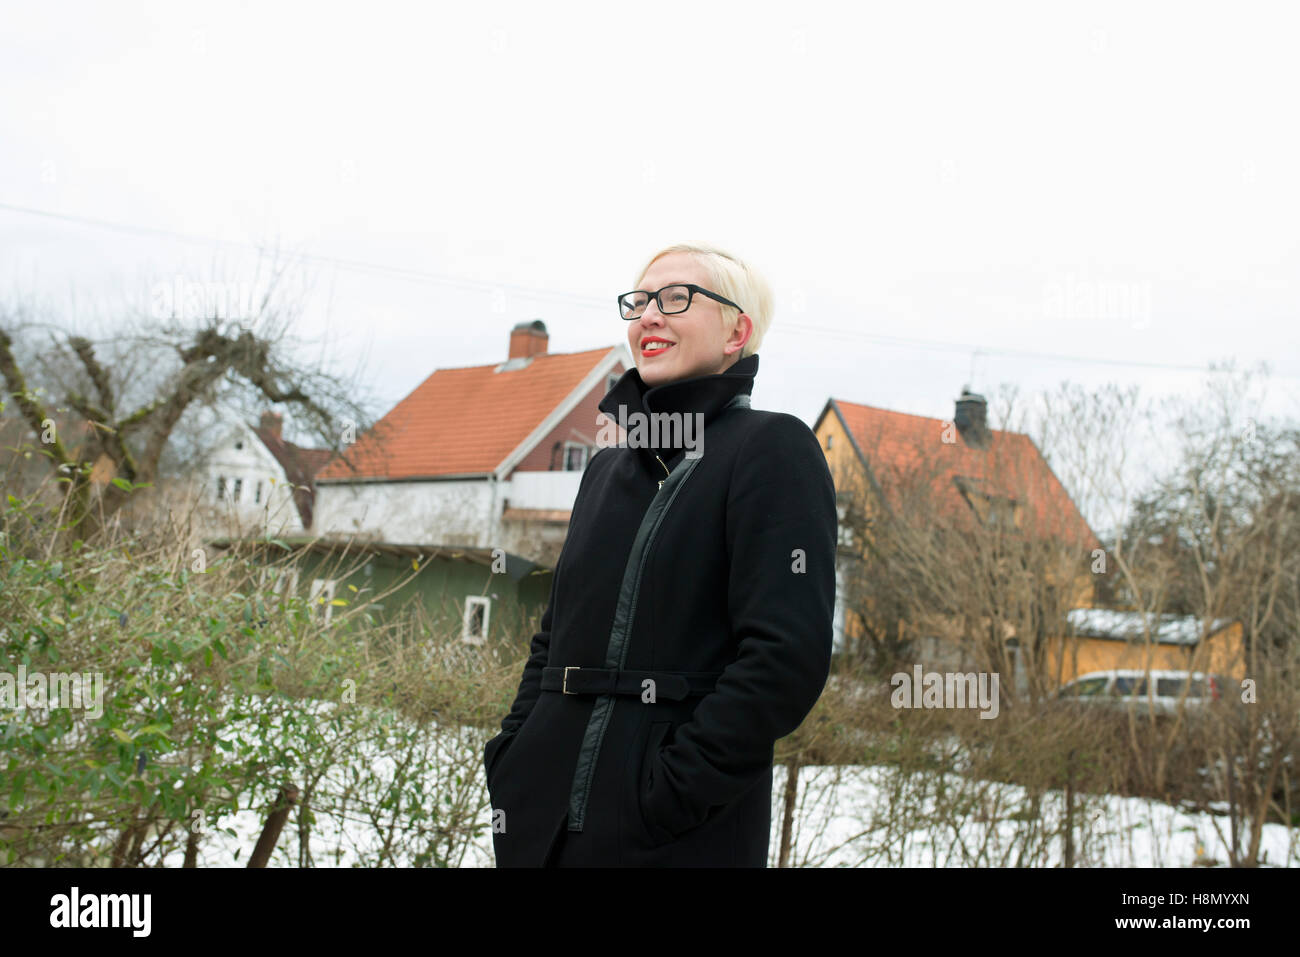 Blonde woman wearing overcoat standing against houses Stock Photo